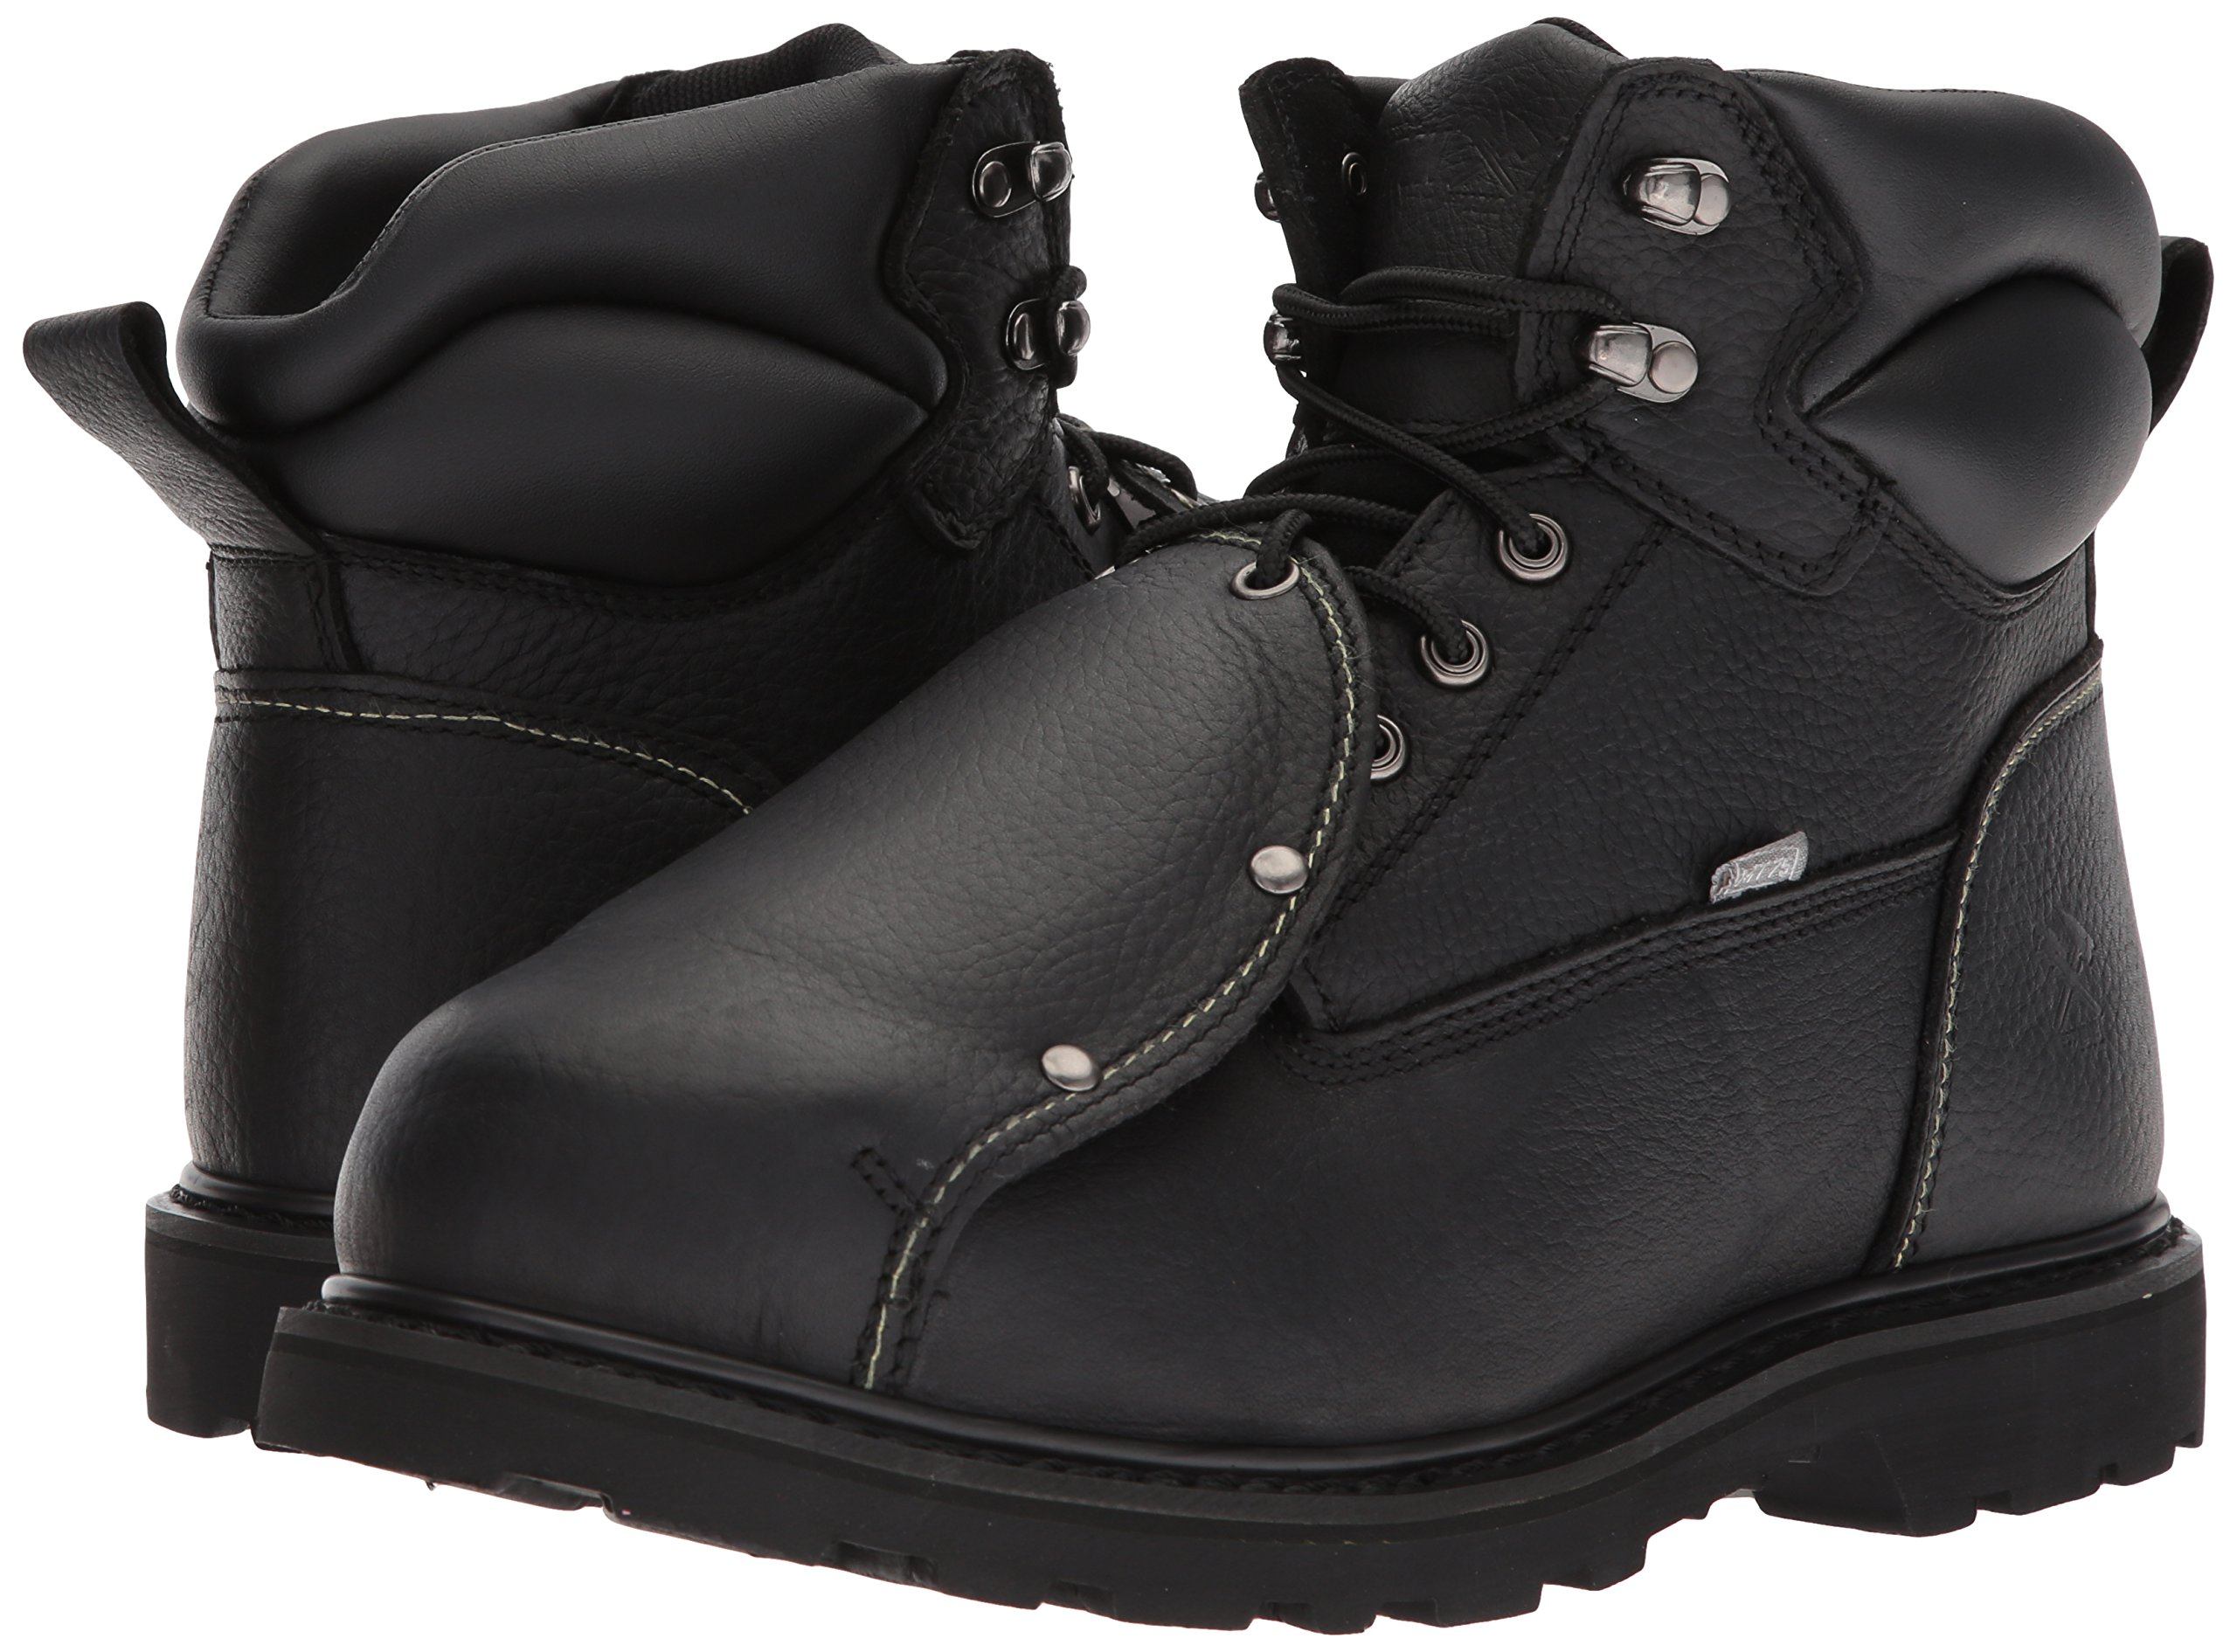 Iron Age Men's Ia5016 Ground Breaker Industrial and Construction Shoe, Black, 10.5 M US by Iron Age (Image #6)